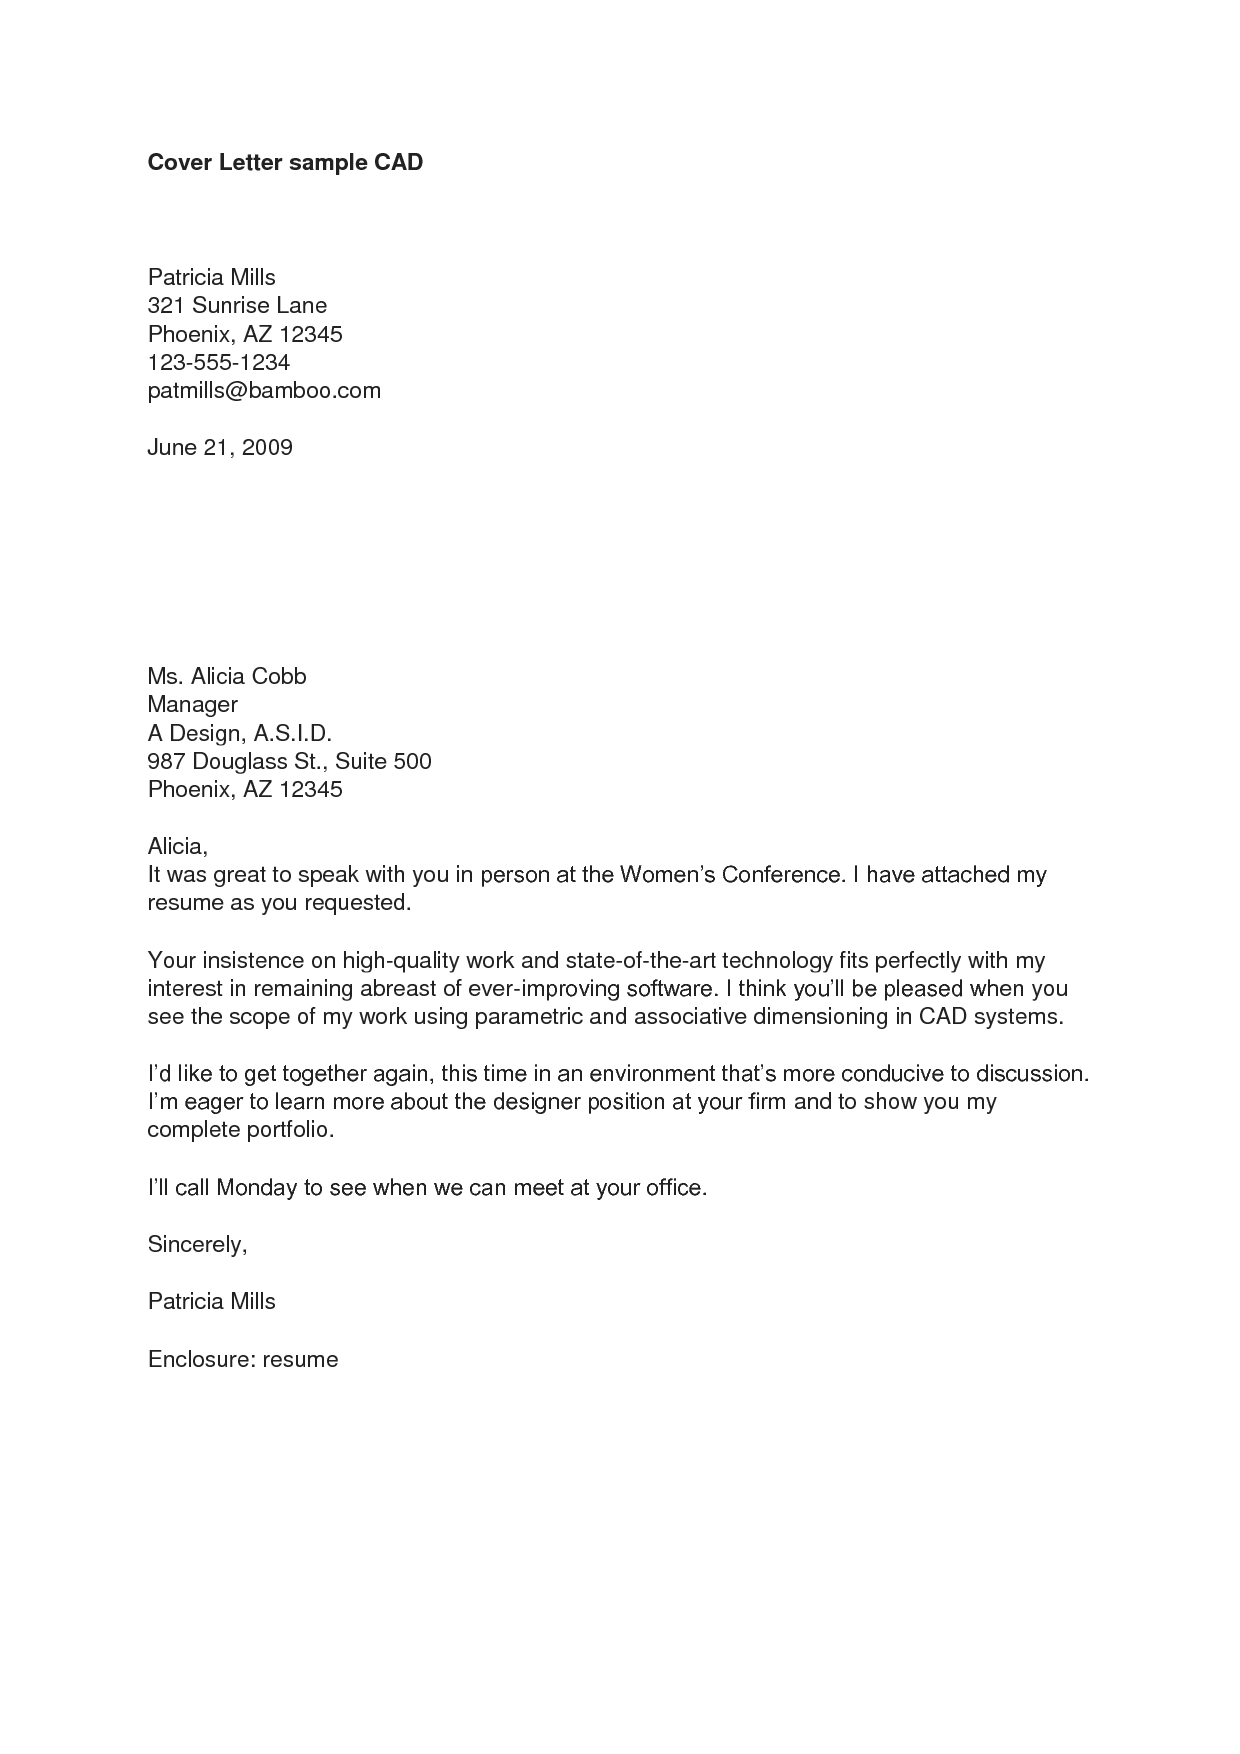 sample email sending your resume